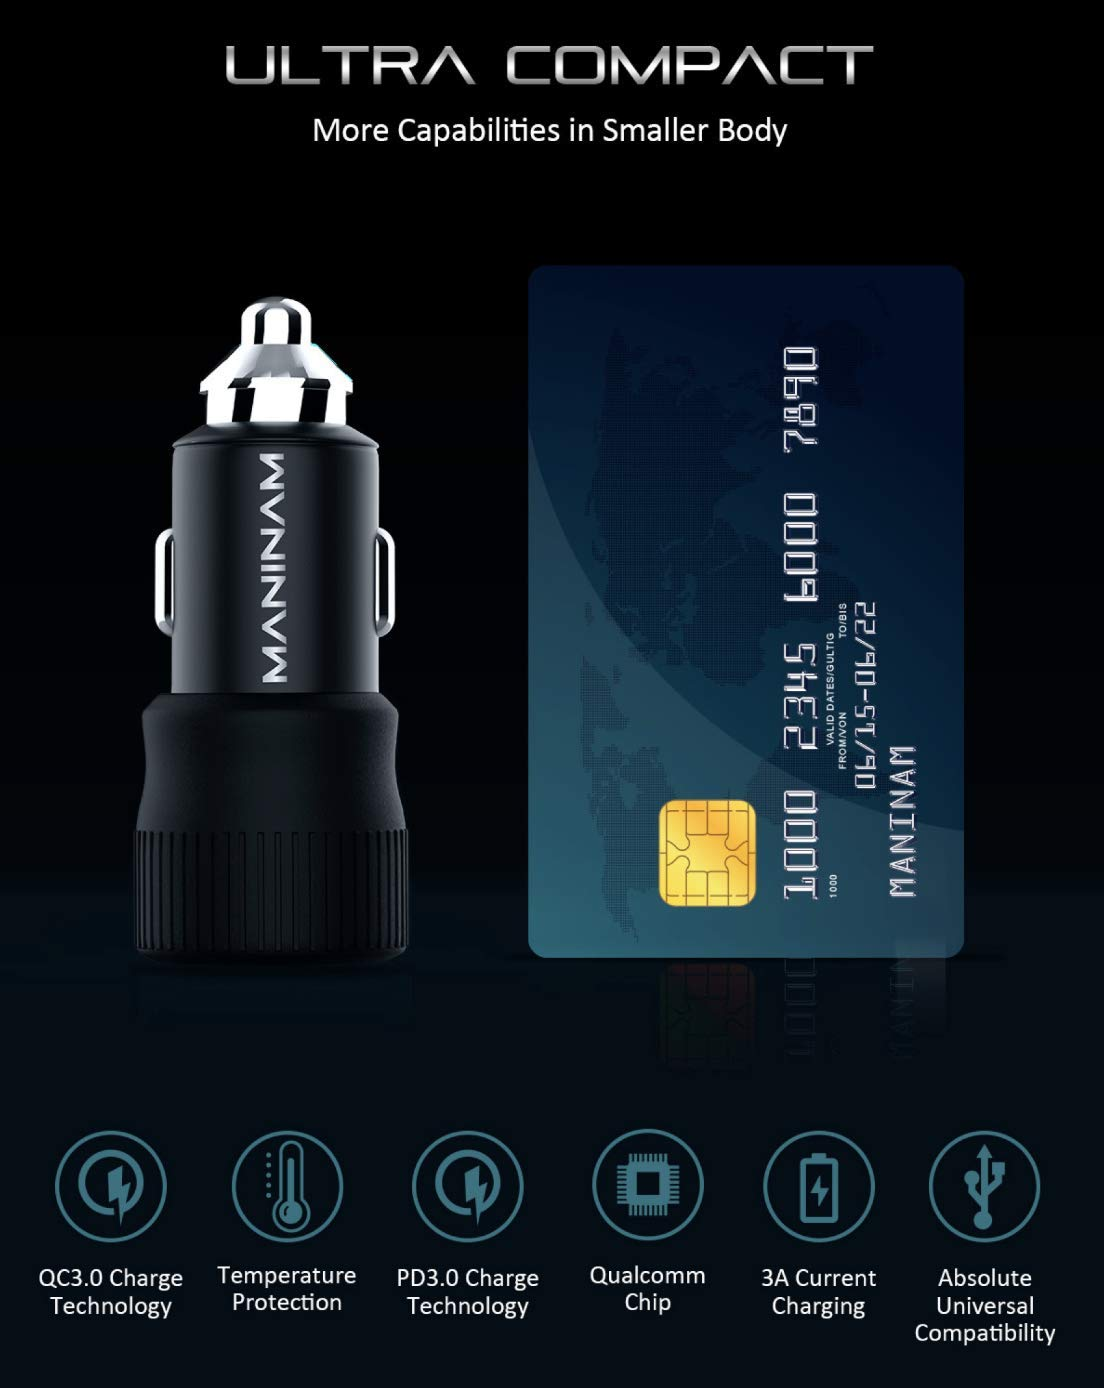 MANINAM Metal USB C Car Charger, 55W PPS 2020 PPS Latest Tech Adapter, 73W Turbo Full Fast Charge for Samsung S20 Note 10 Plus Type C Car Charger Any USB C Laptop Tablet Phone 45W PD MacBook